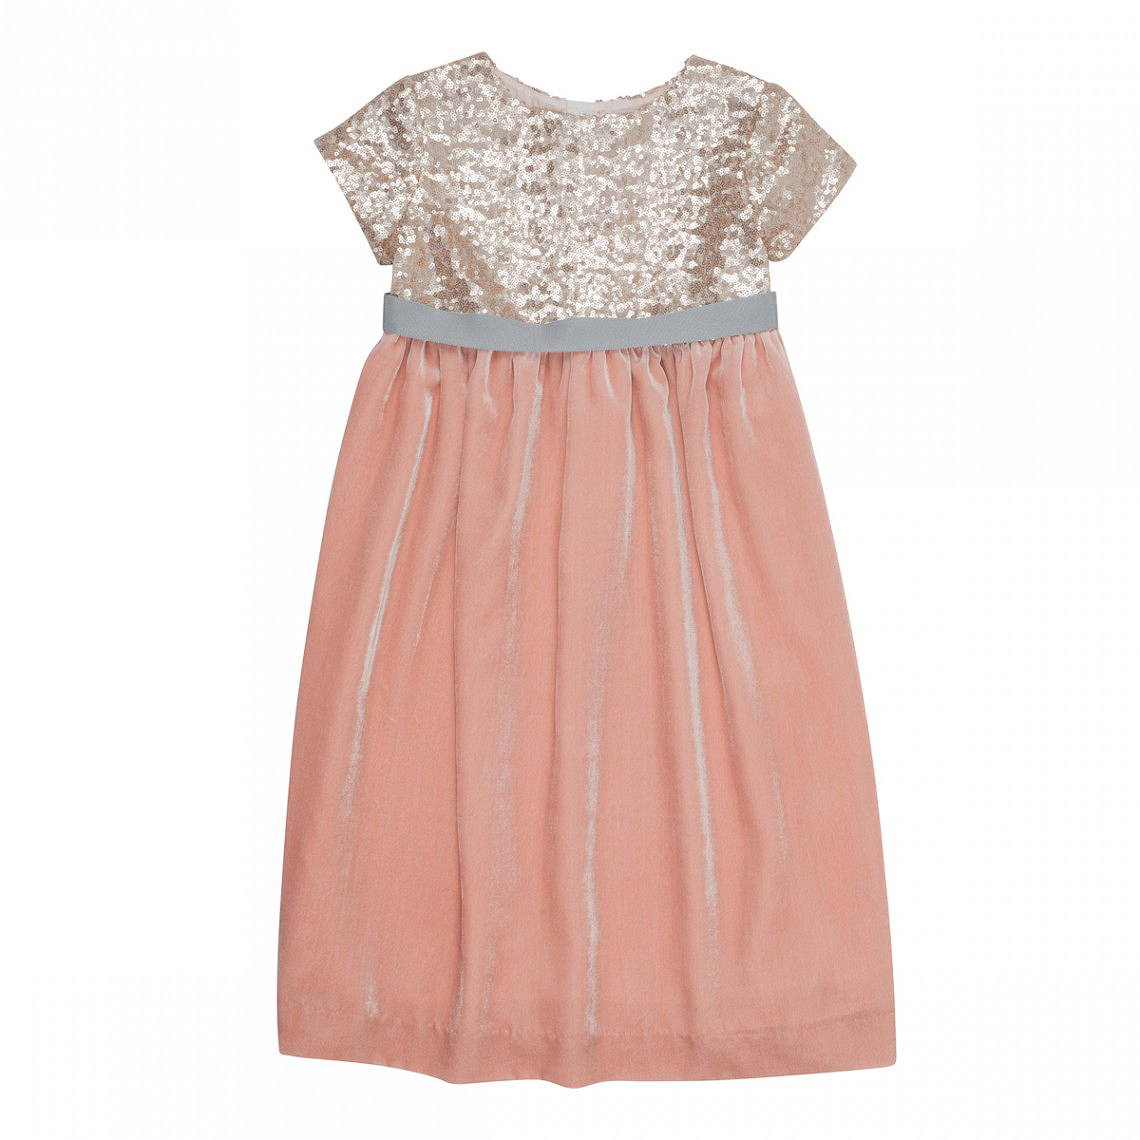 sparkly top pink flower girl dress